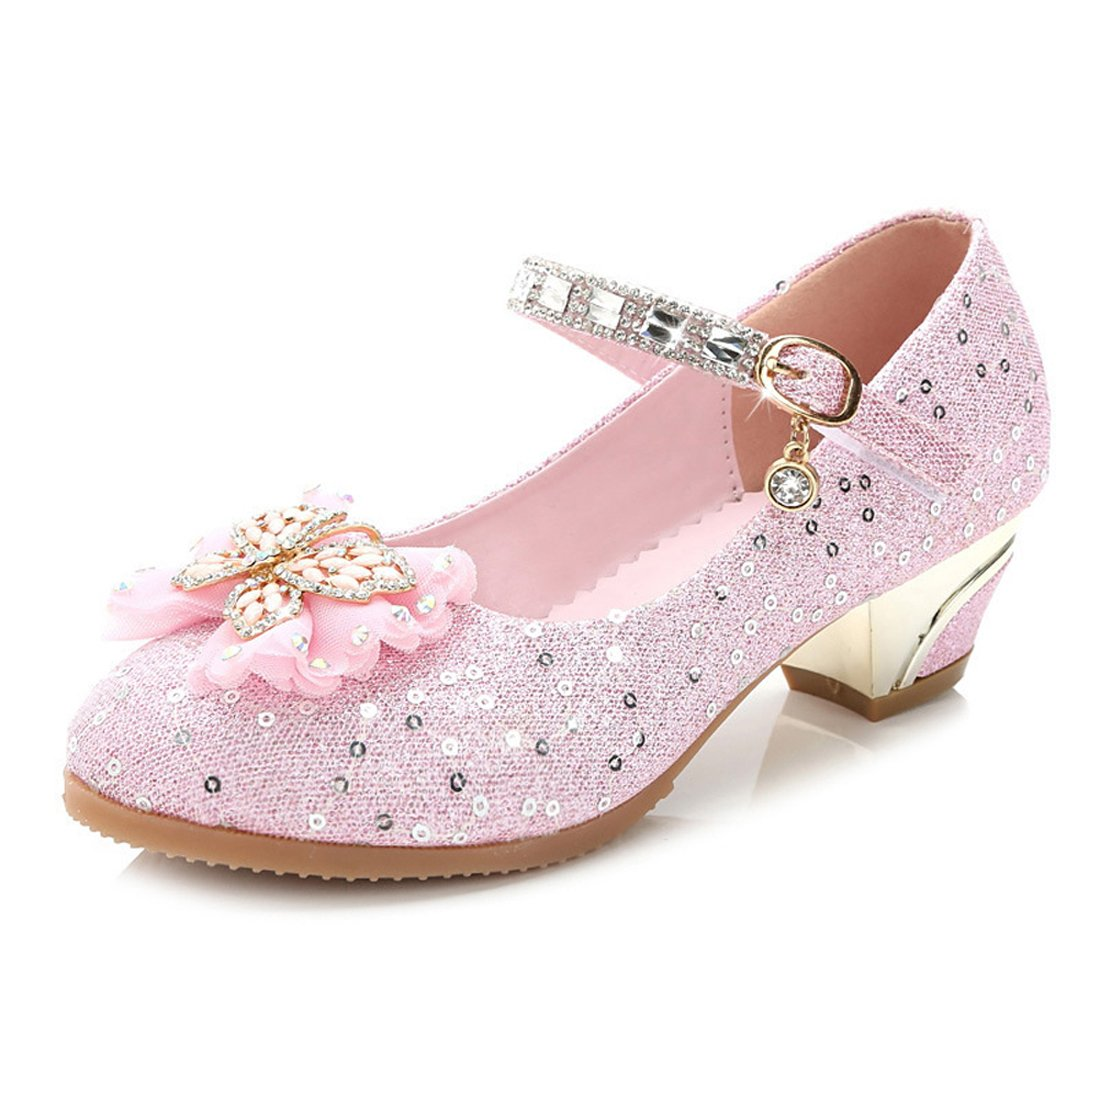 Girls Kids Cosplay Glittering Princess Mary Jane Heel Dress Shoes Wedding Party